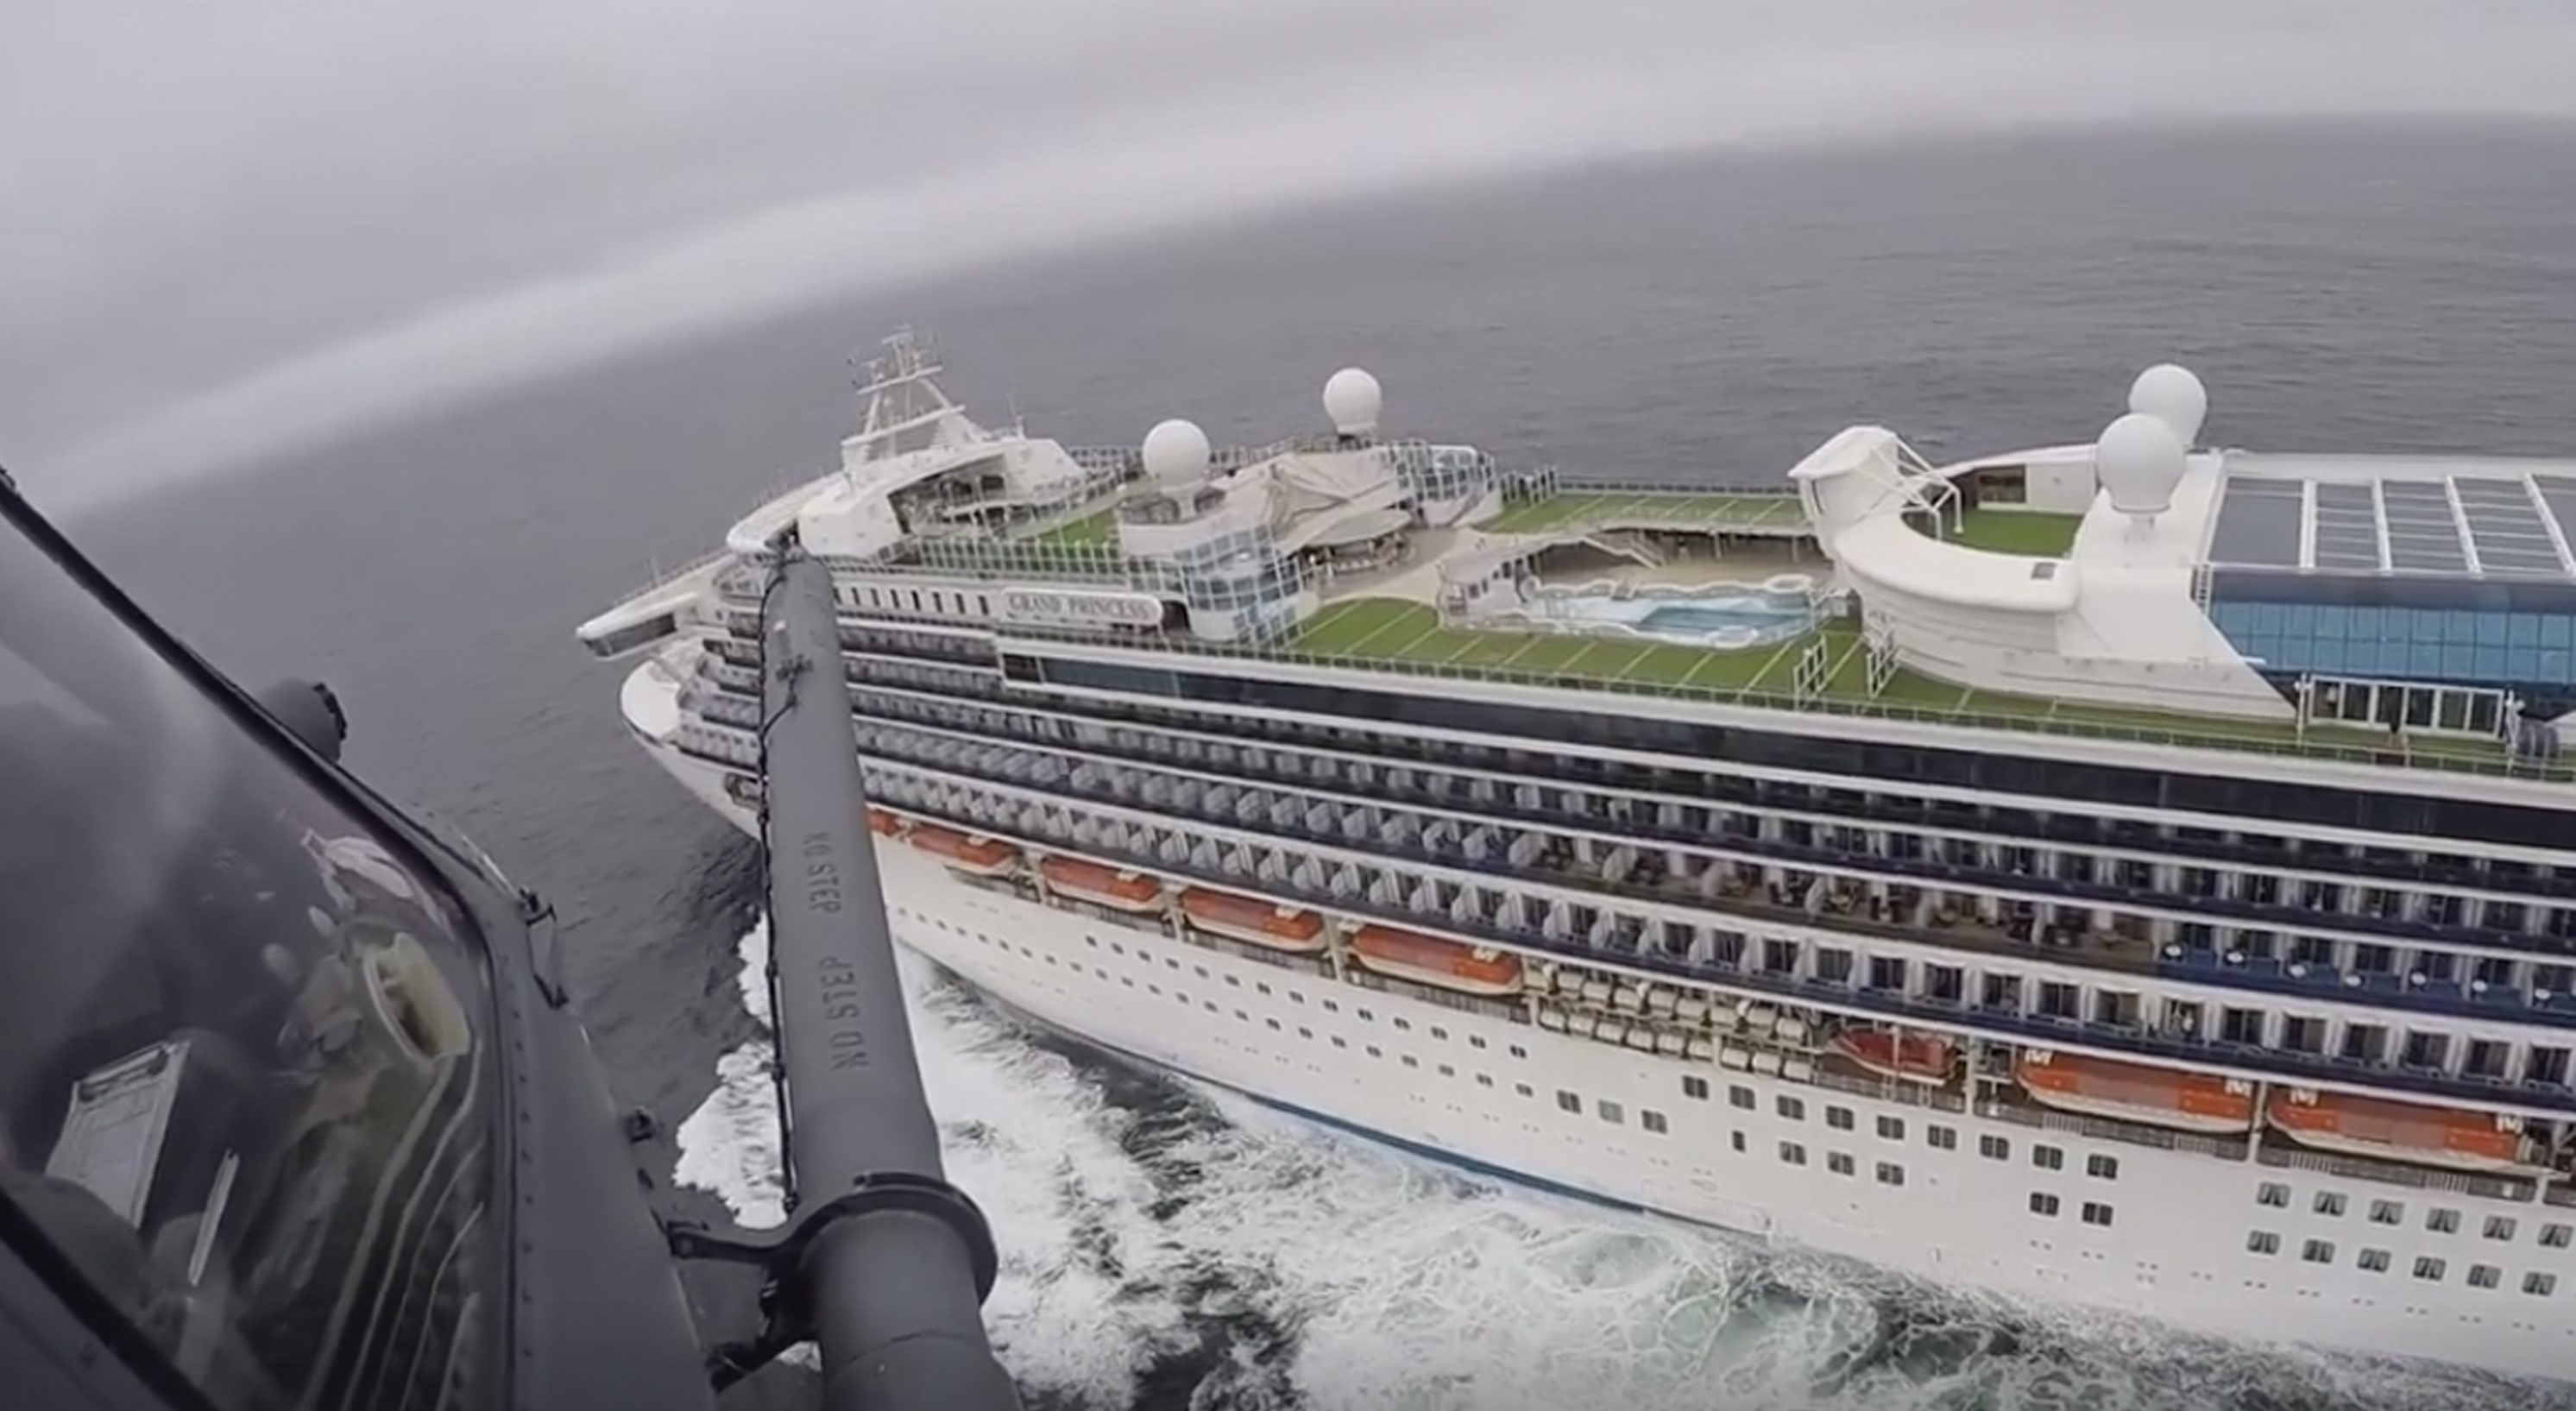 The Grand Princess is contending with Covid-19 infections.